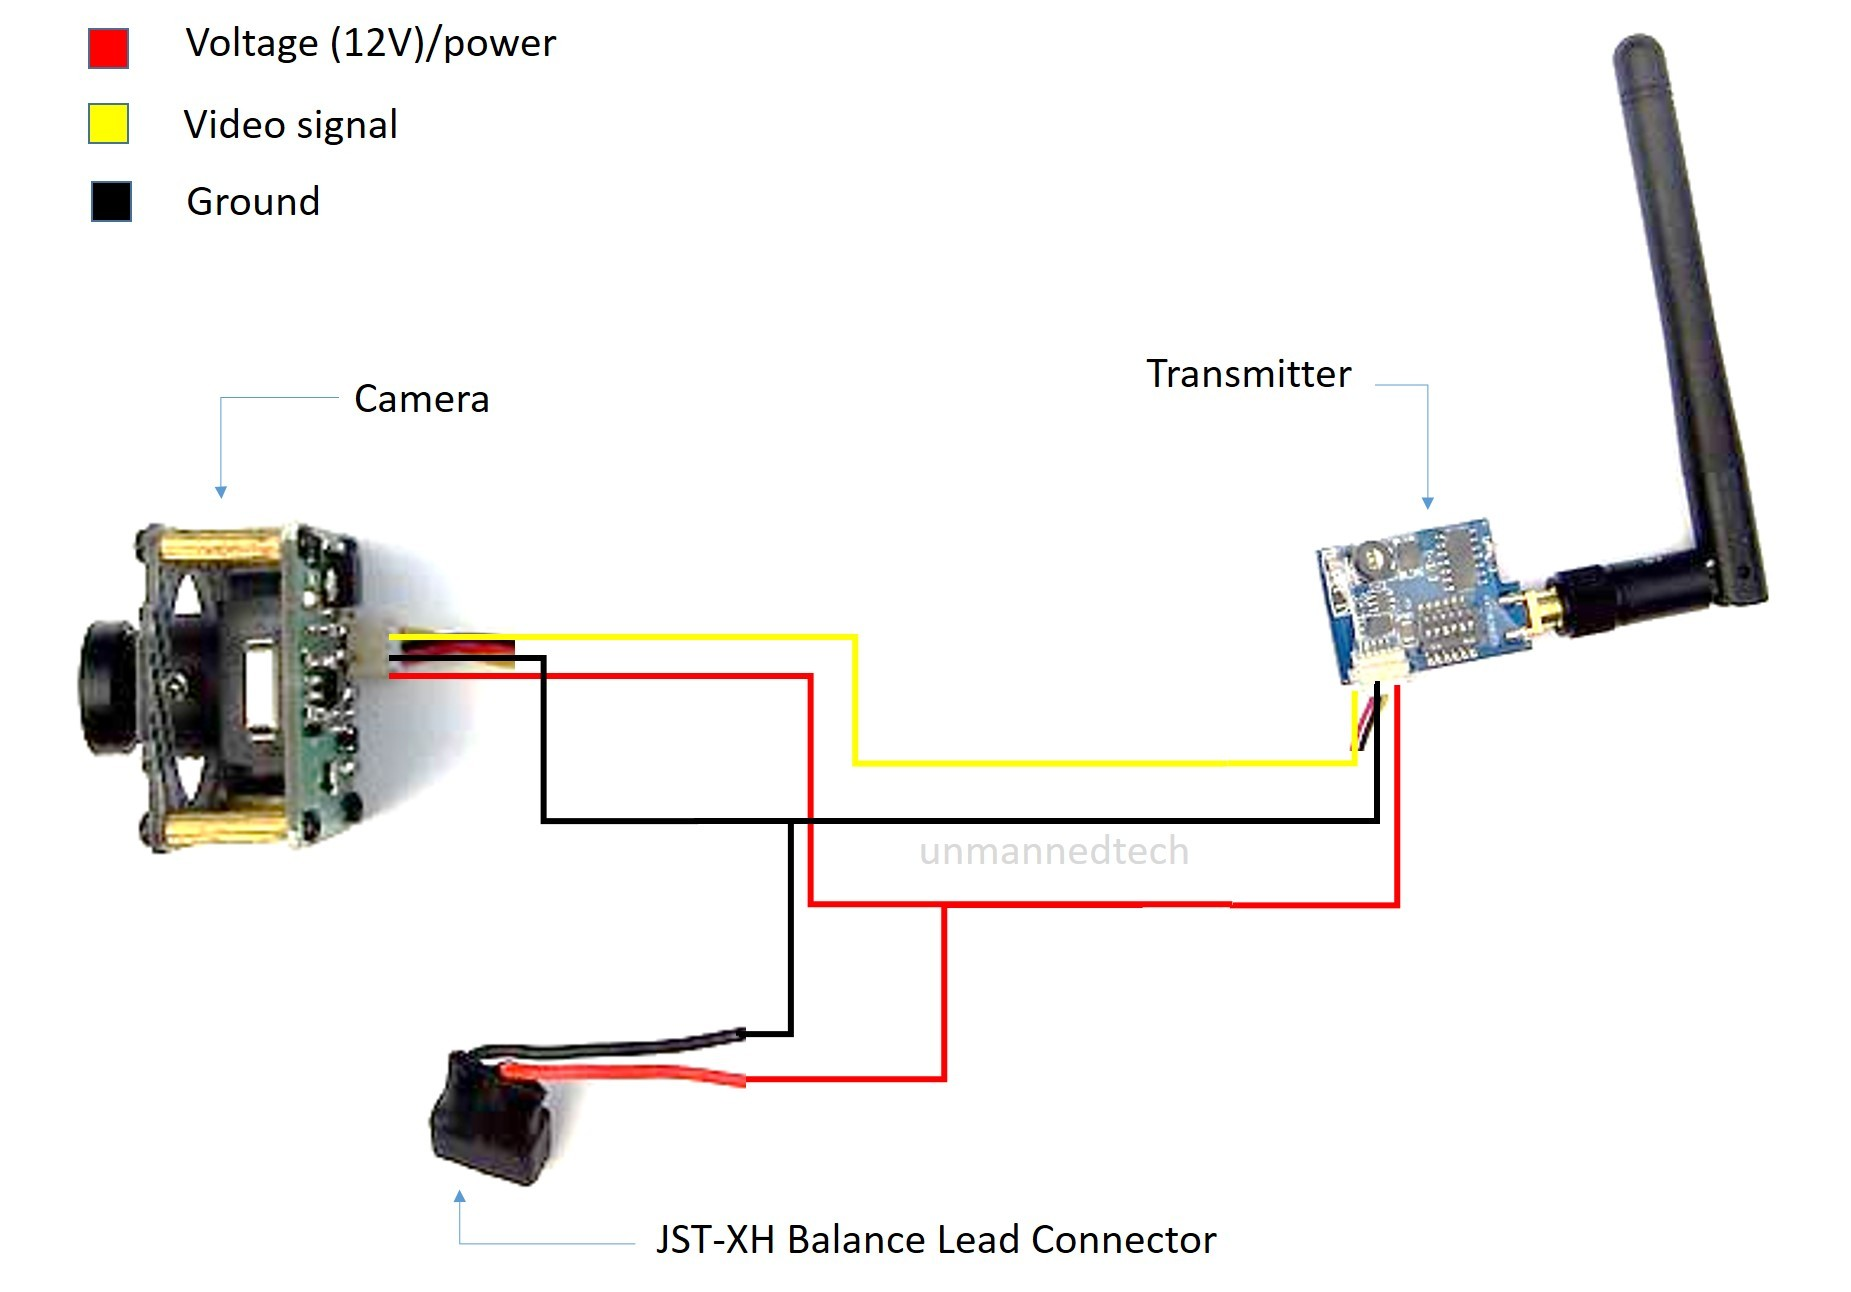 drone and fpv wiring diagram beginners guide on how to build a mini fpv 250 quadcopter using the diagram above shows